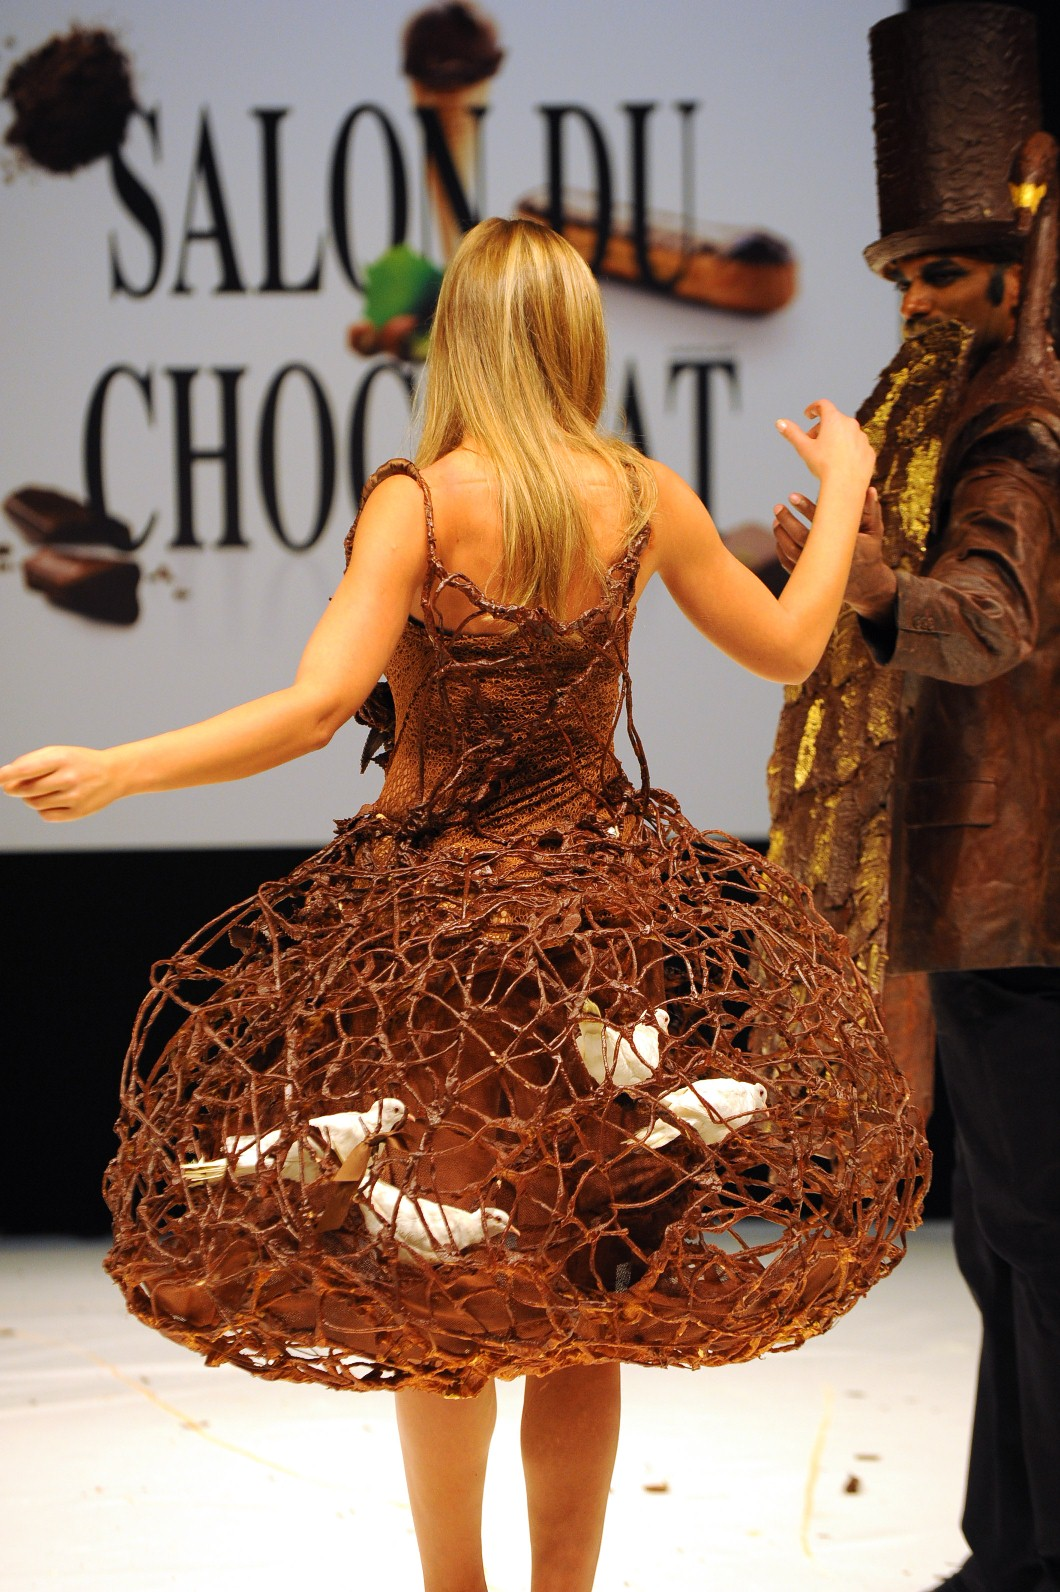 Salon Du Chocolat 2017 Paris French Chocolate Festival Has An Unusual Way To Show Off Chocolate